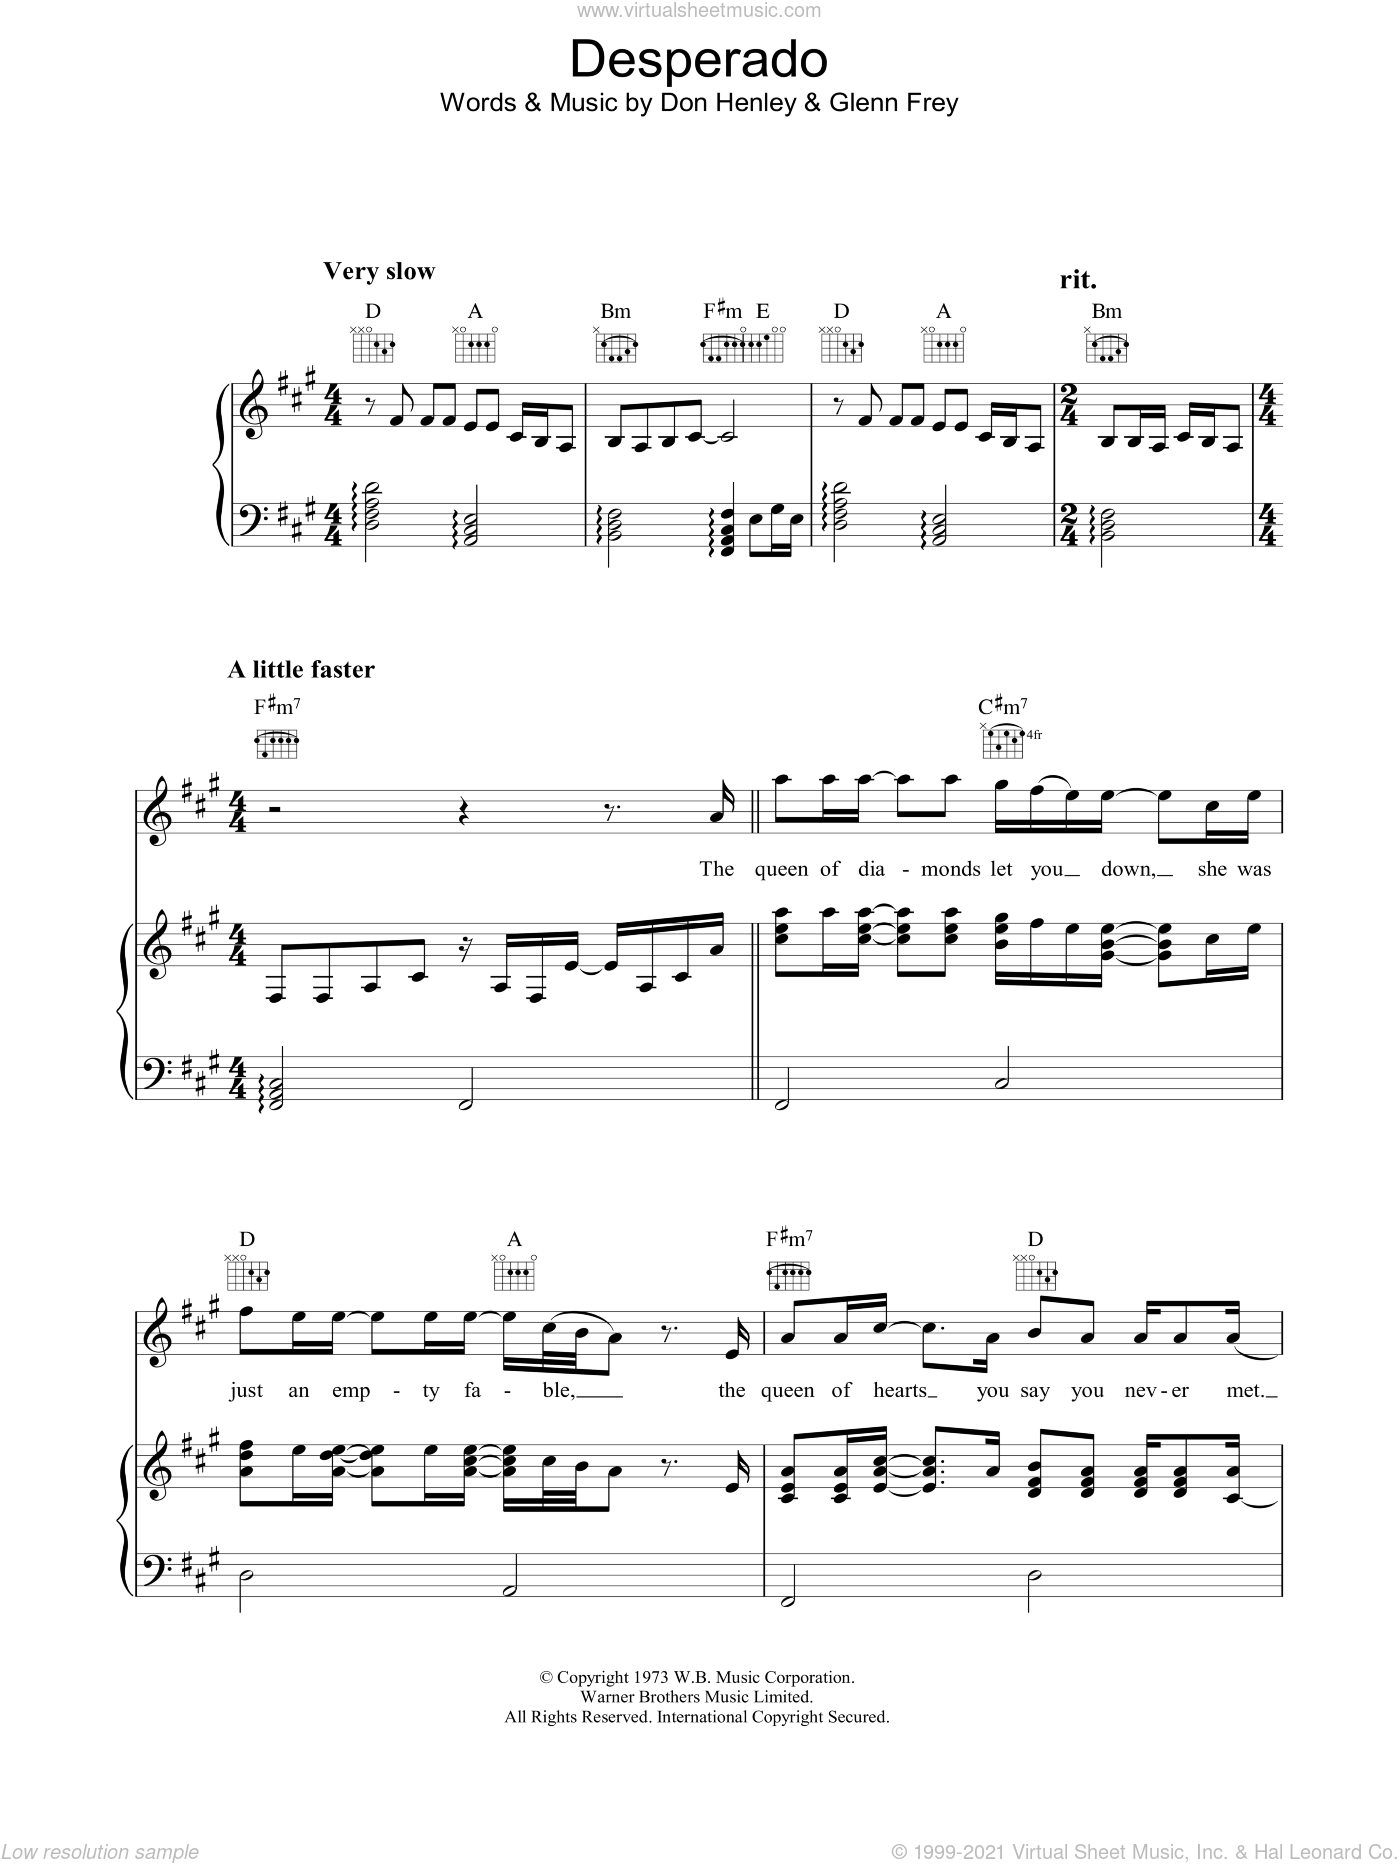 Desperado (Part II) sheet music for voice, piano or guitar by Don Henley, The Eagles and Glenn Frey, intermediate skill level